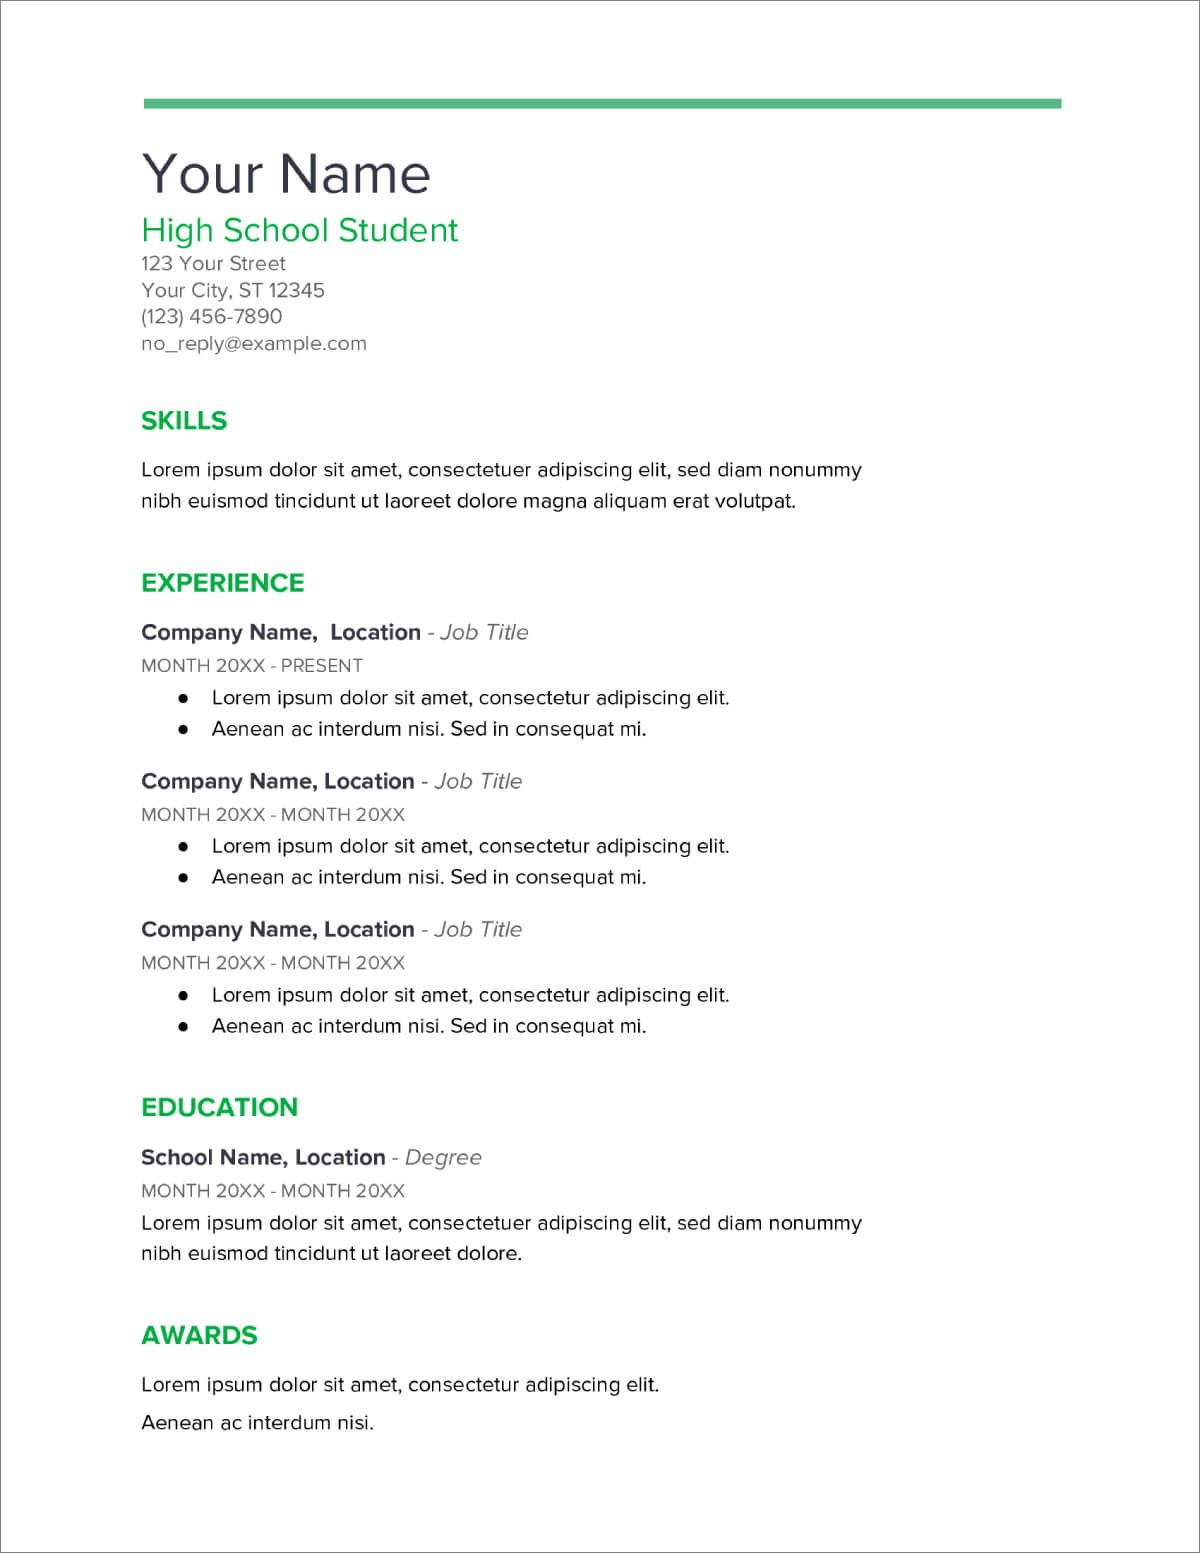 high school resume templates now schooler sample google documents templets dropshipping Resume High Schooler High School Resume Sample